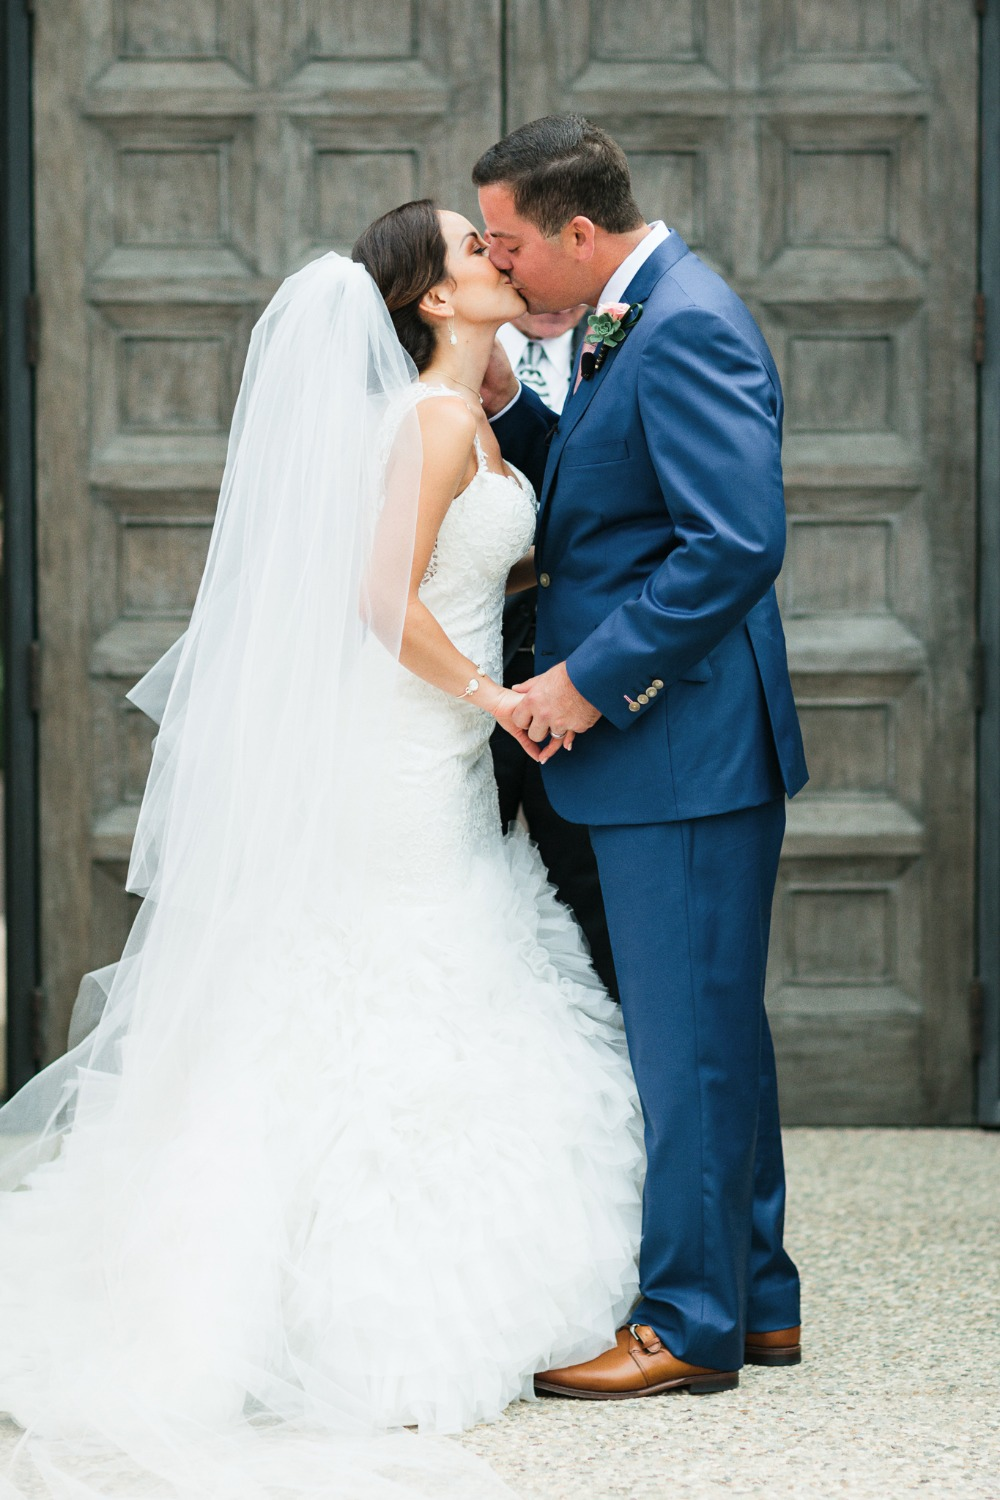 Ceremony wedding kiss